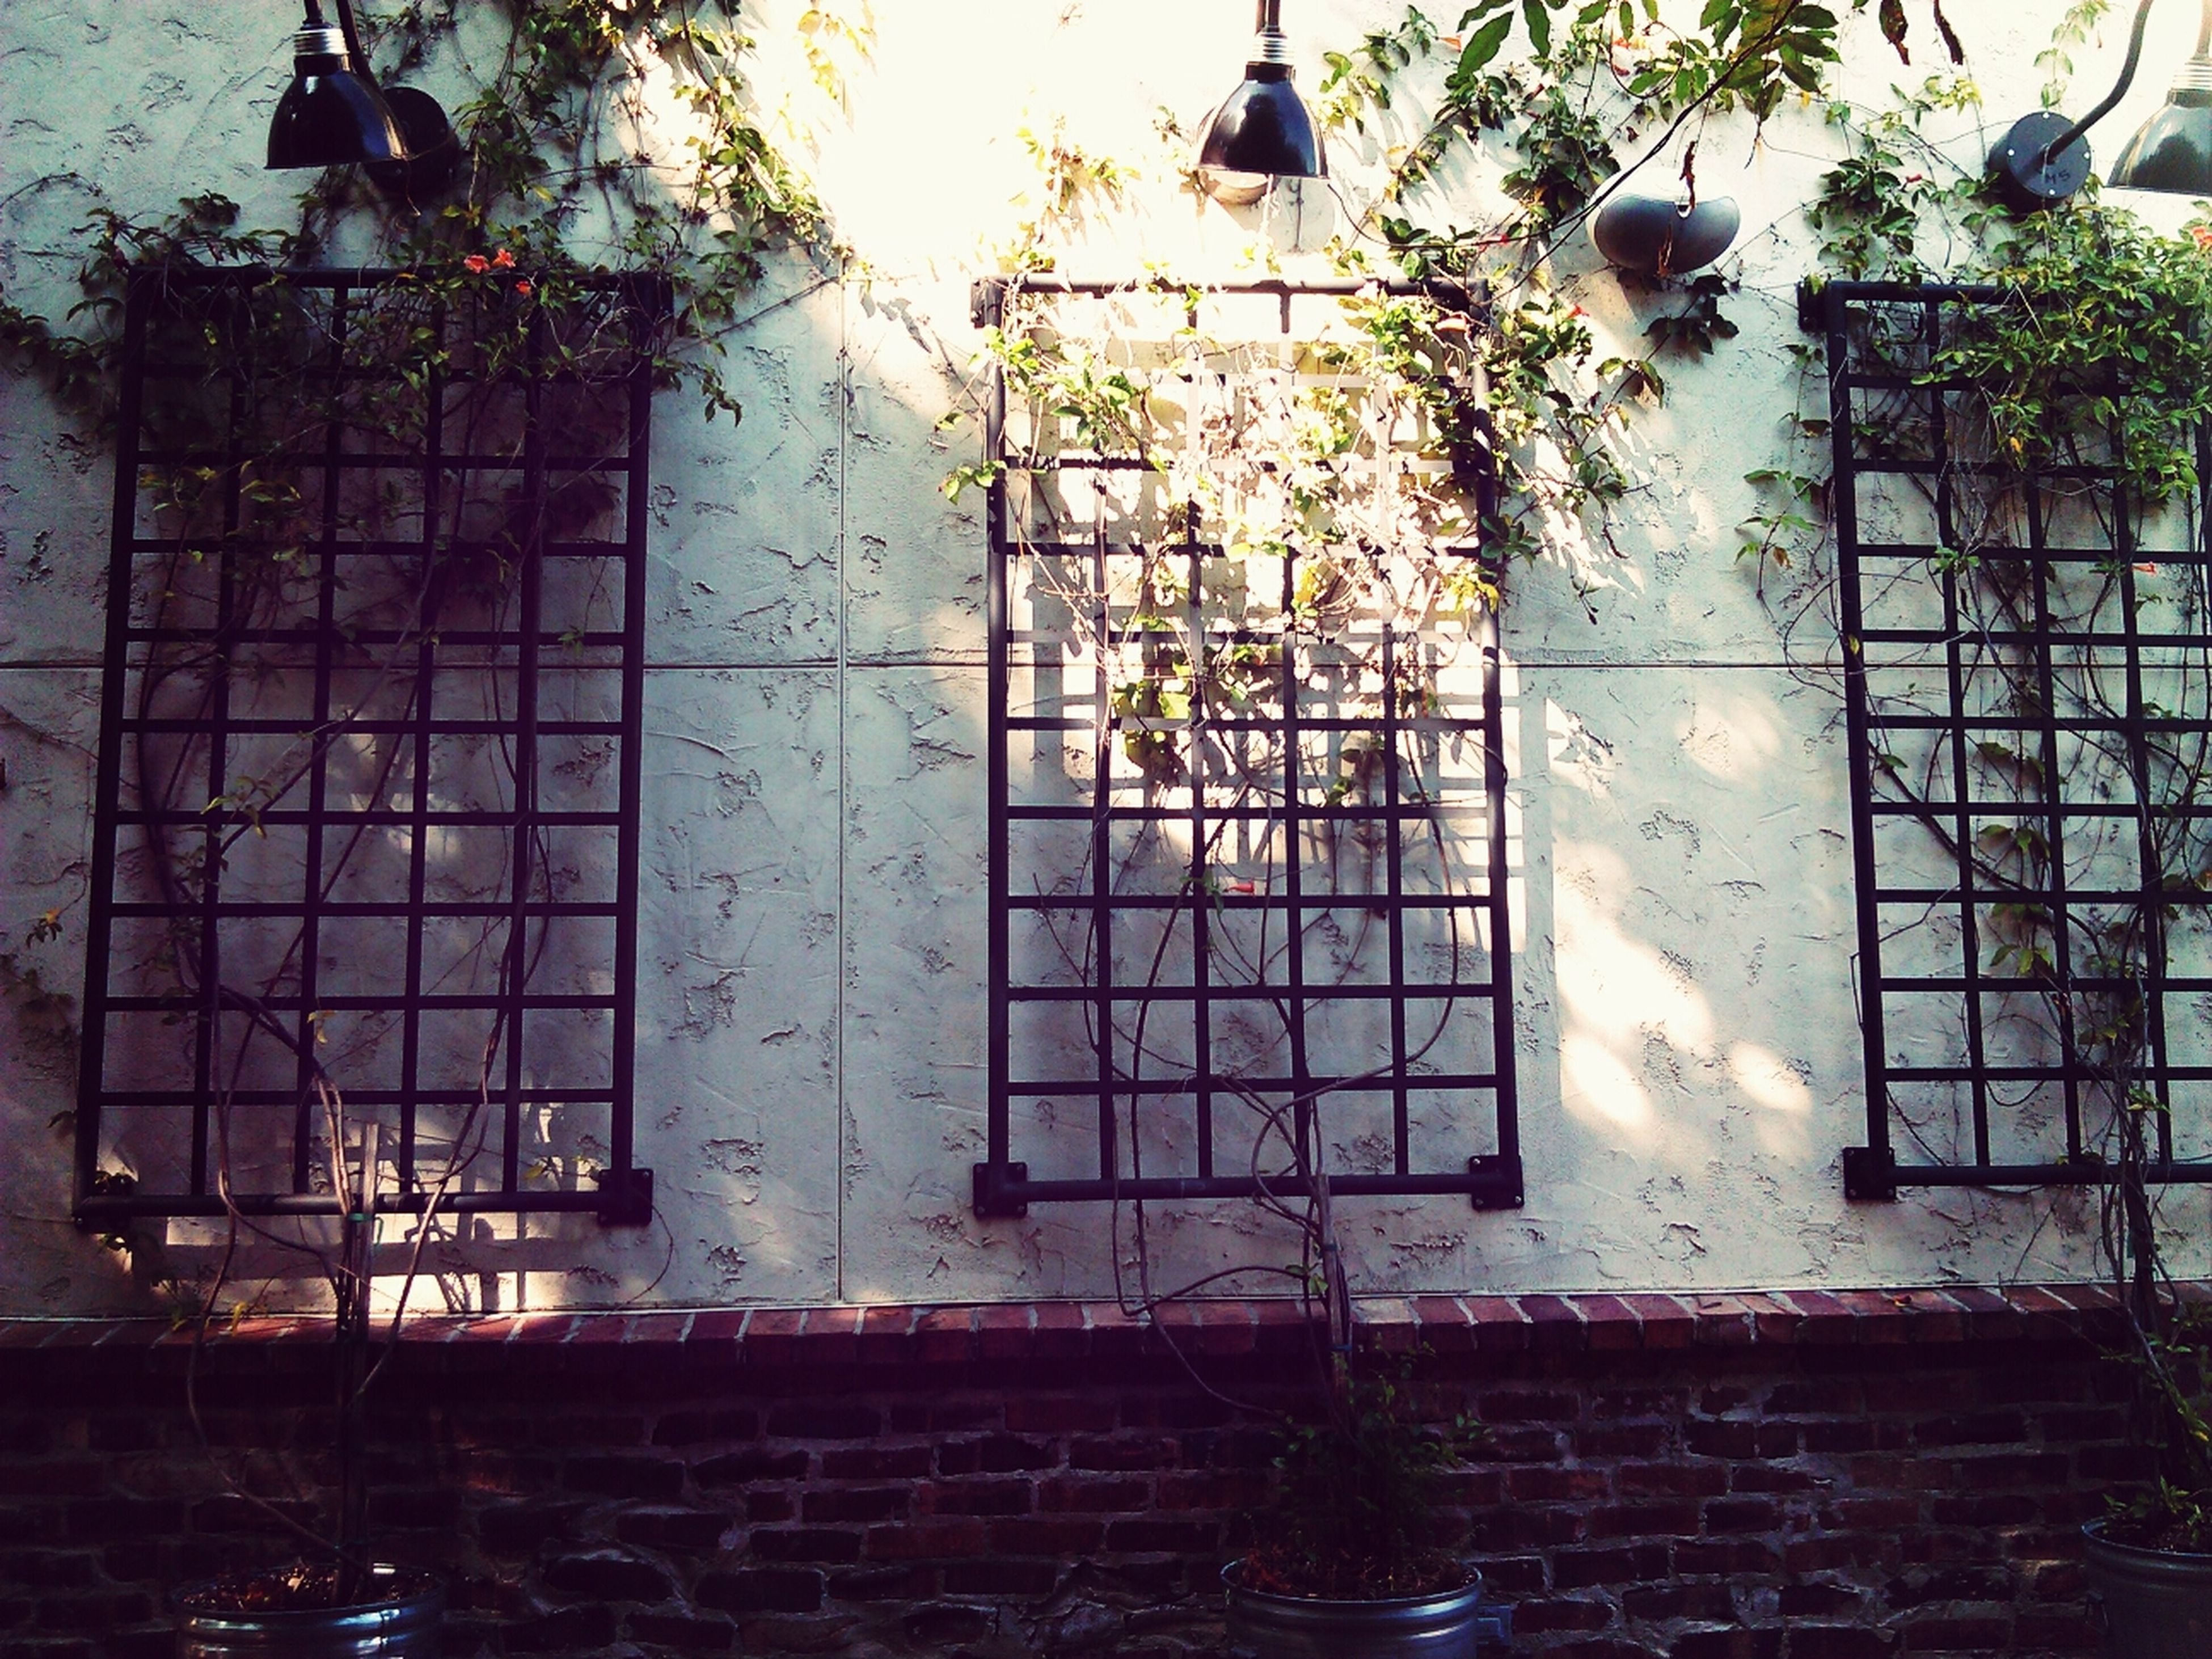 architecture, built structure, building exterior, window, wall - building feature, glass - material, indoors, house, door, building, metal, closed, metal grate, potted plant, old, day, entrance, plant, no people, sunlight